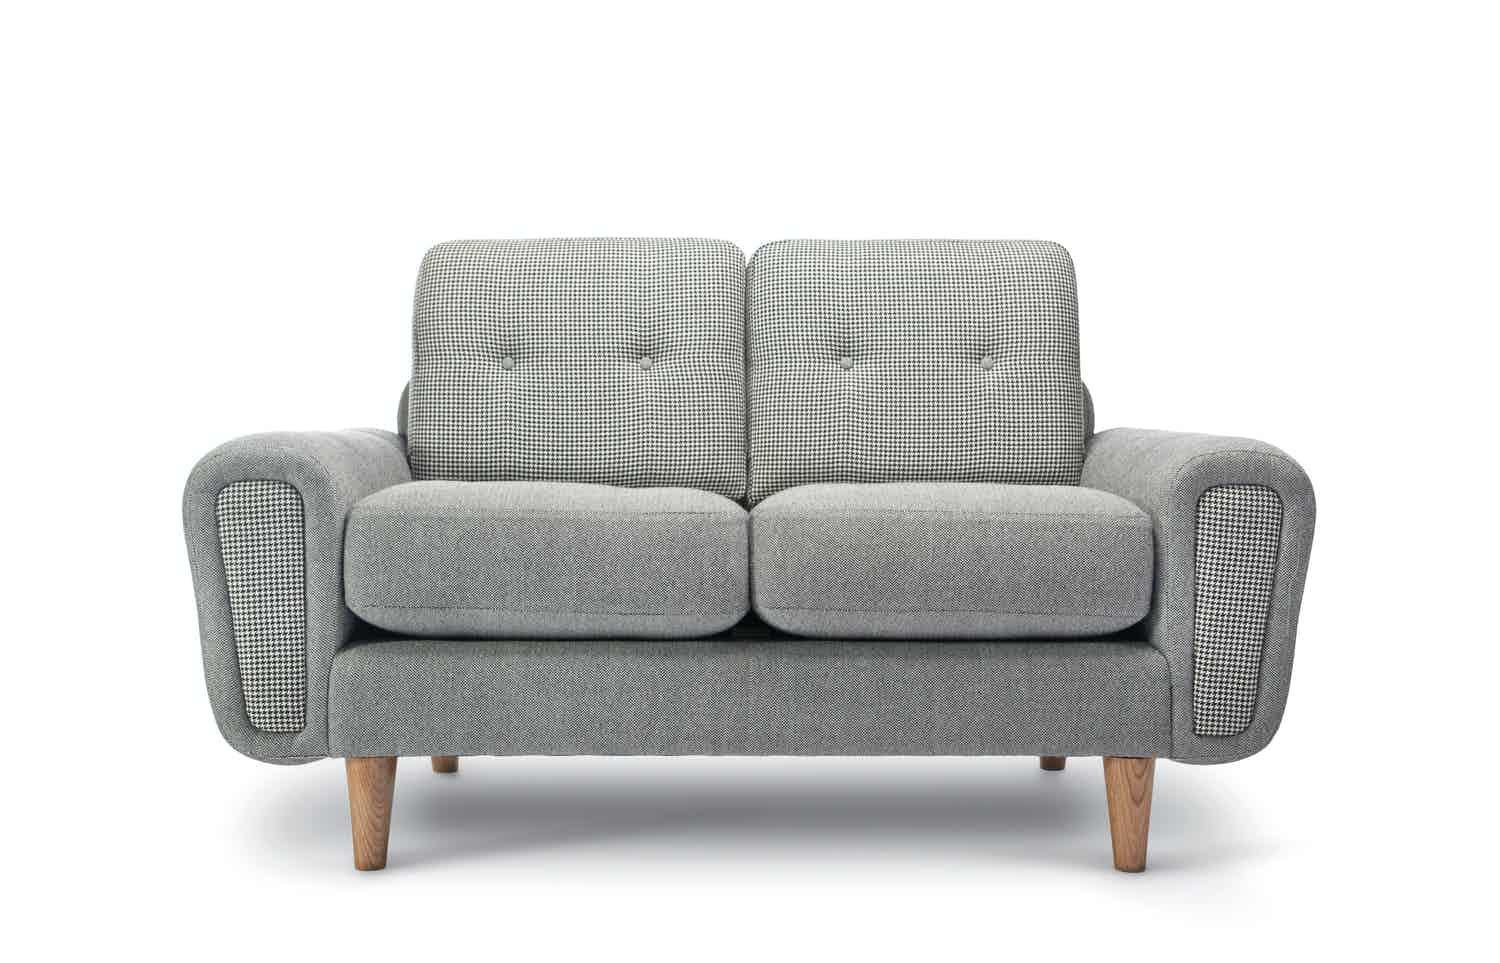 Deadgood-harvey-sofa-two-seat-haute-living